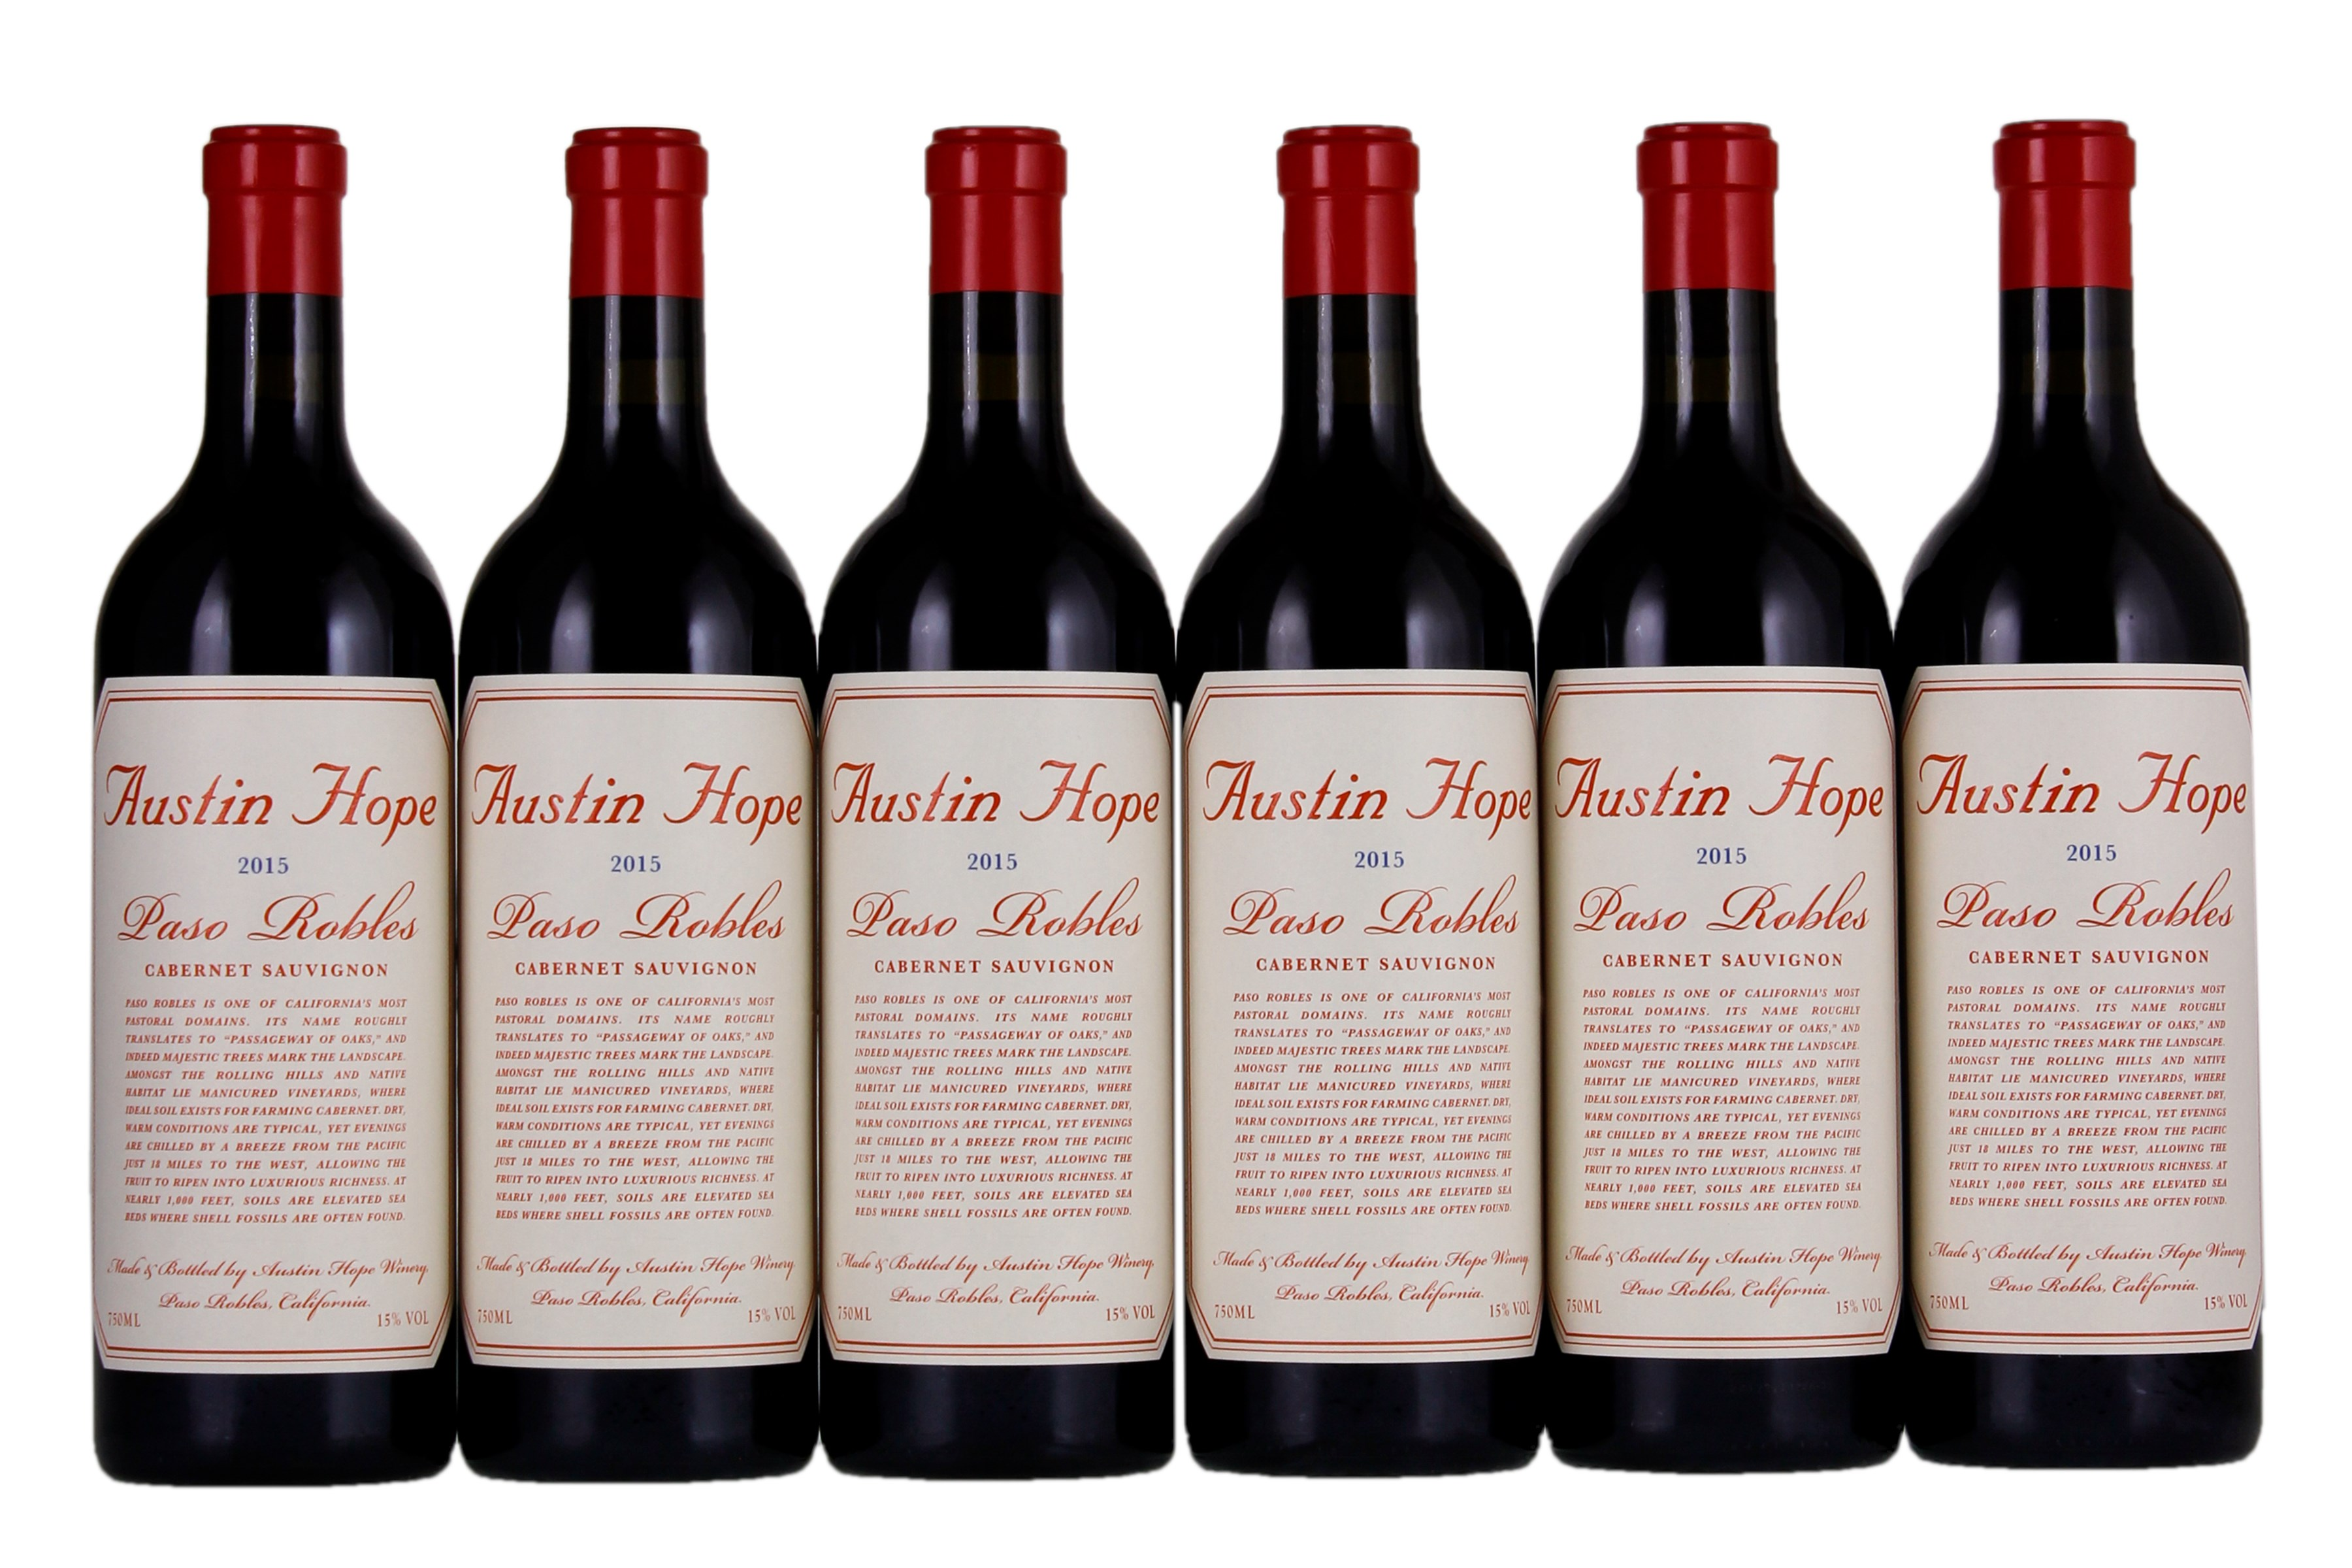 Austin Hope Cabernet Sauvignon 2015 Red Wine From United States